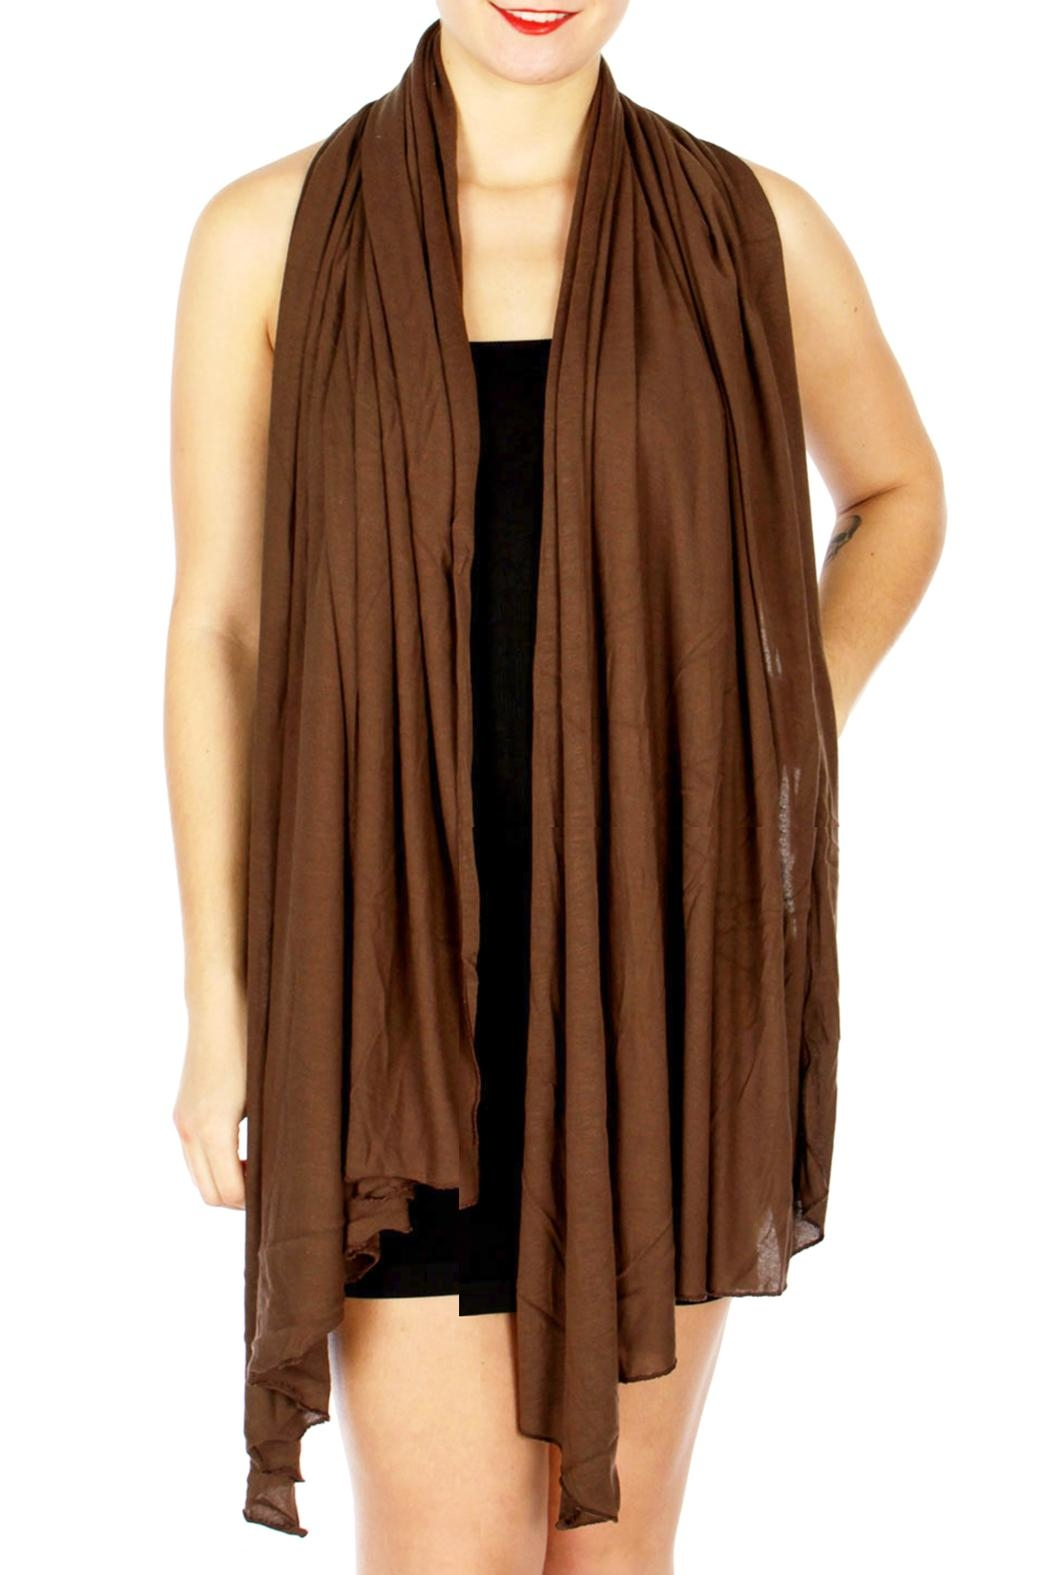 TIGERLILY Brown Diagonal Scarf - Main Image